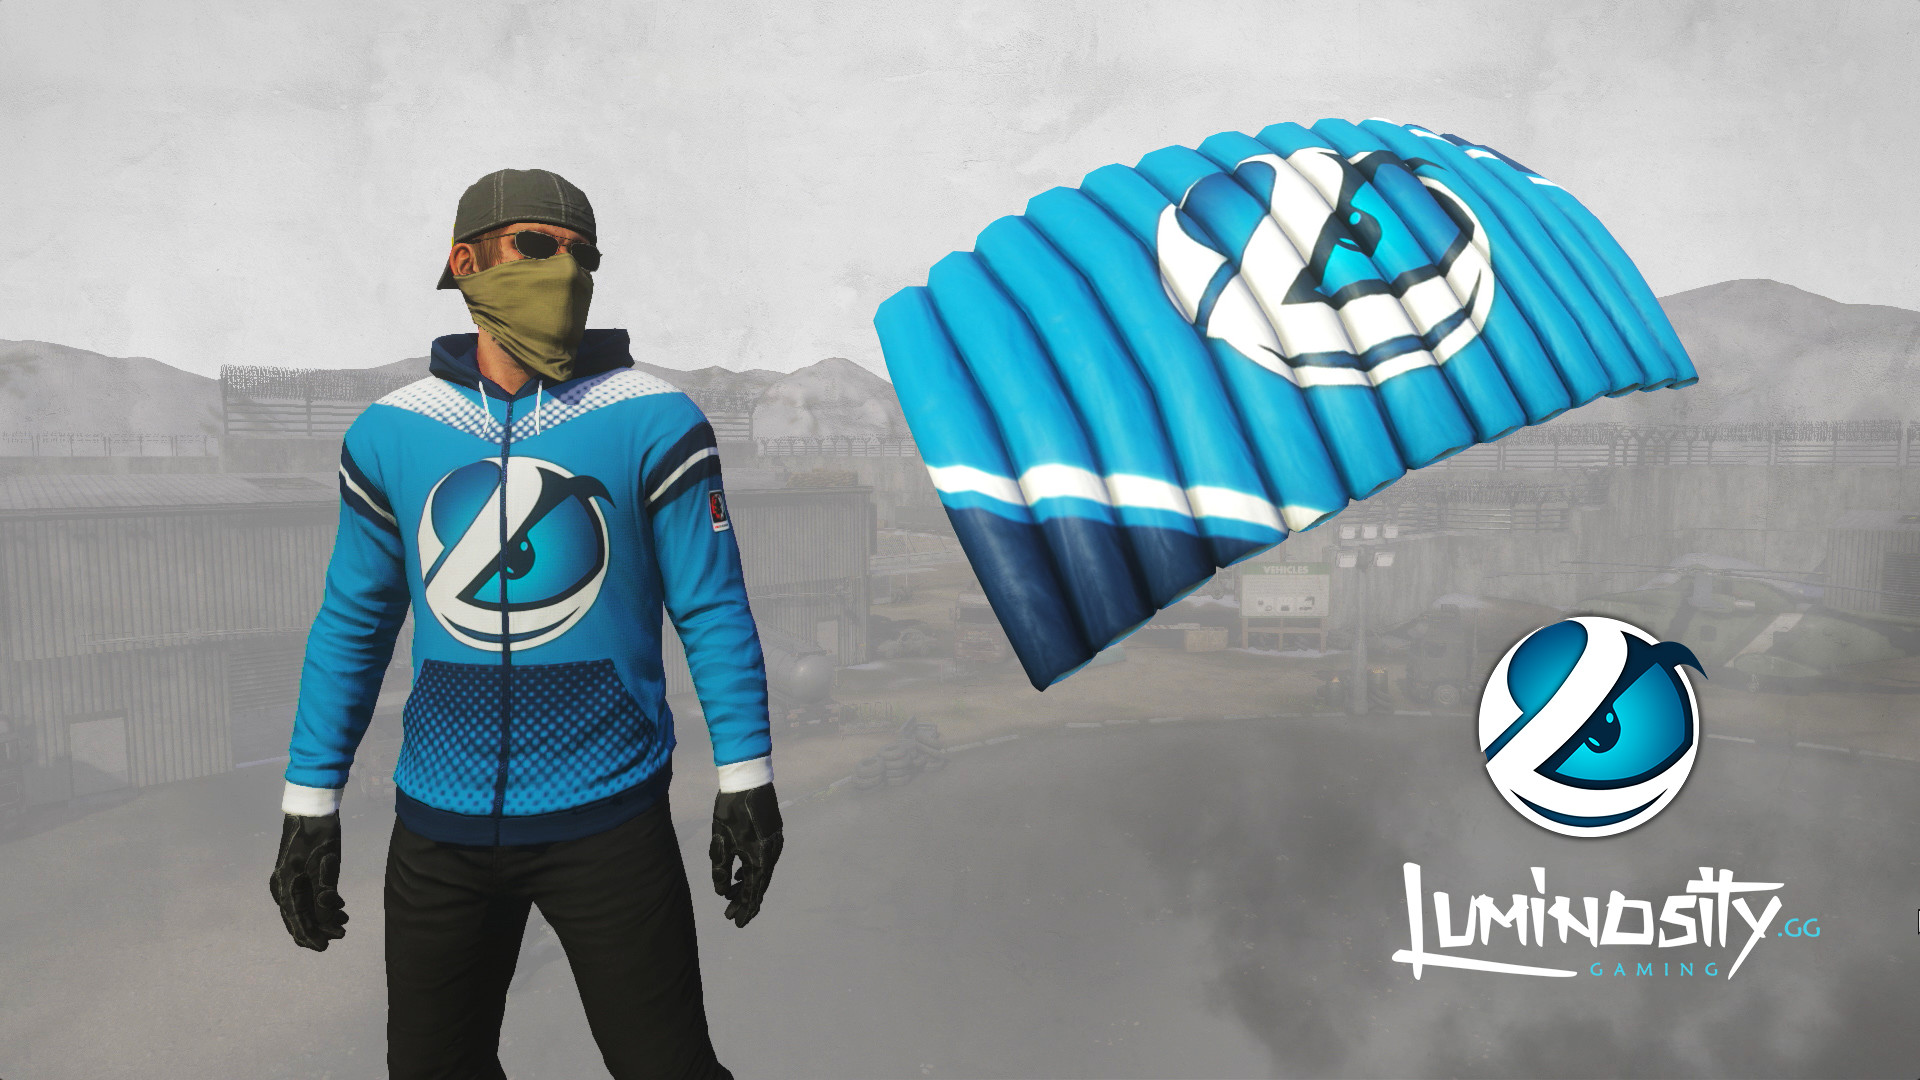 H1Z1  Pro League - Luminosity Gaming Team Pack (2018) promotional ... 169c94dcc